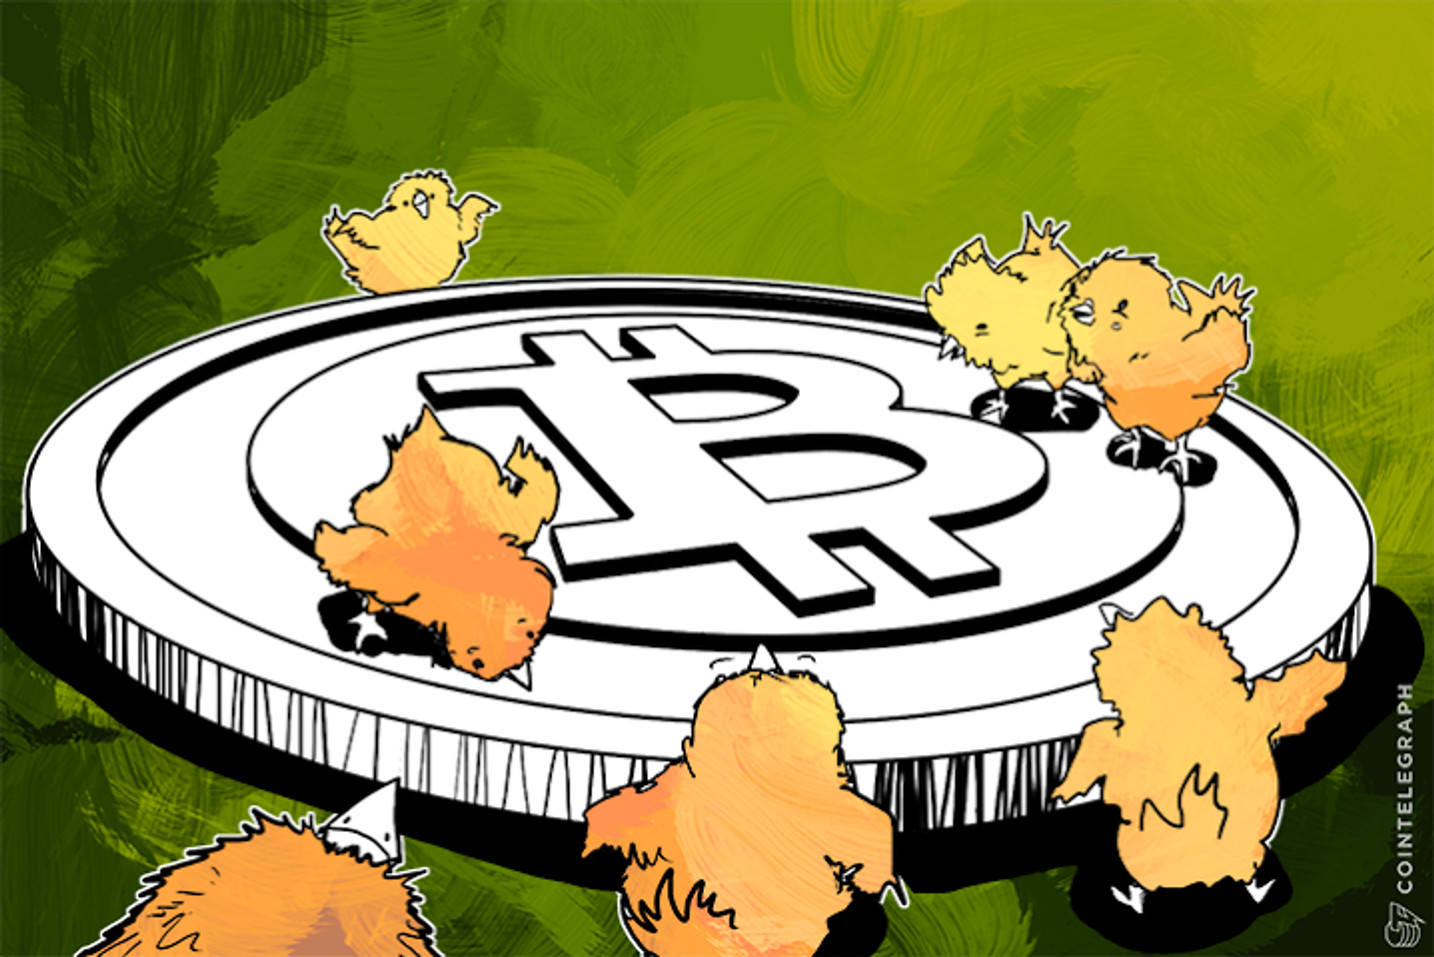 Visa Europe's Initiative: The 'Apple App Store' for Bitcoin Startups